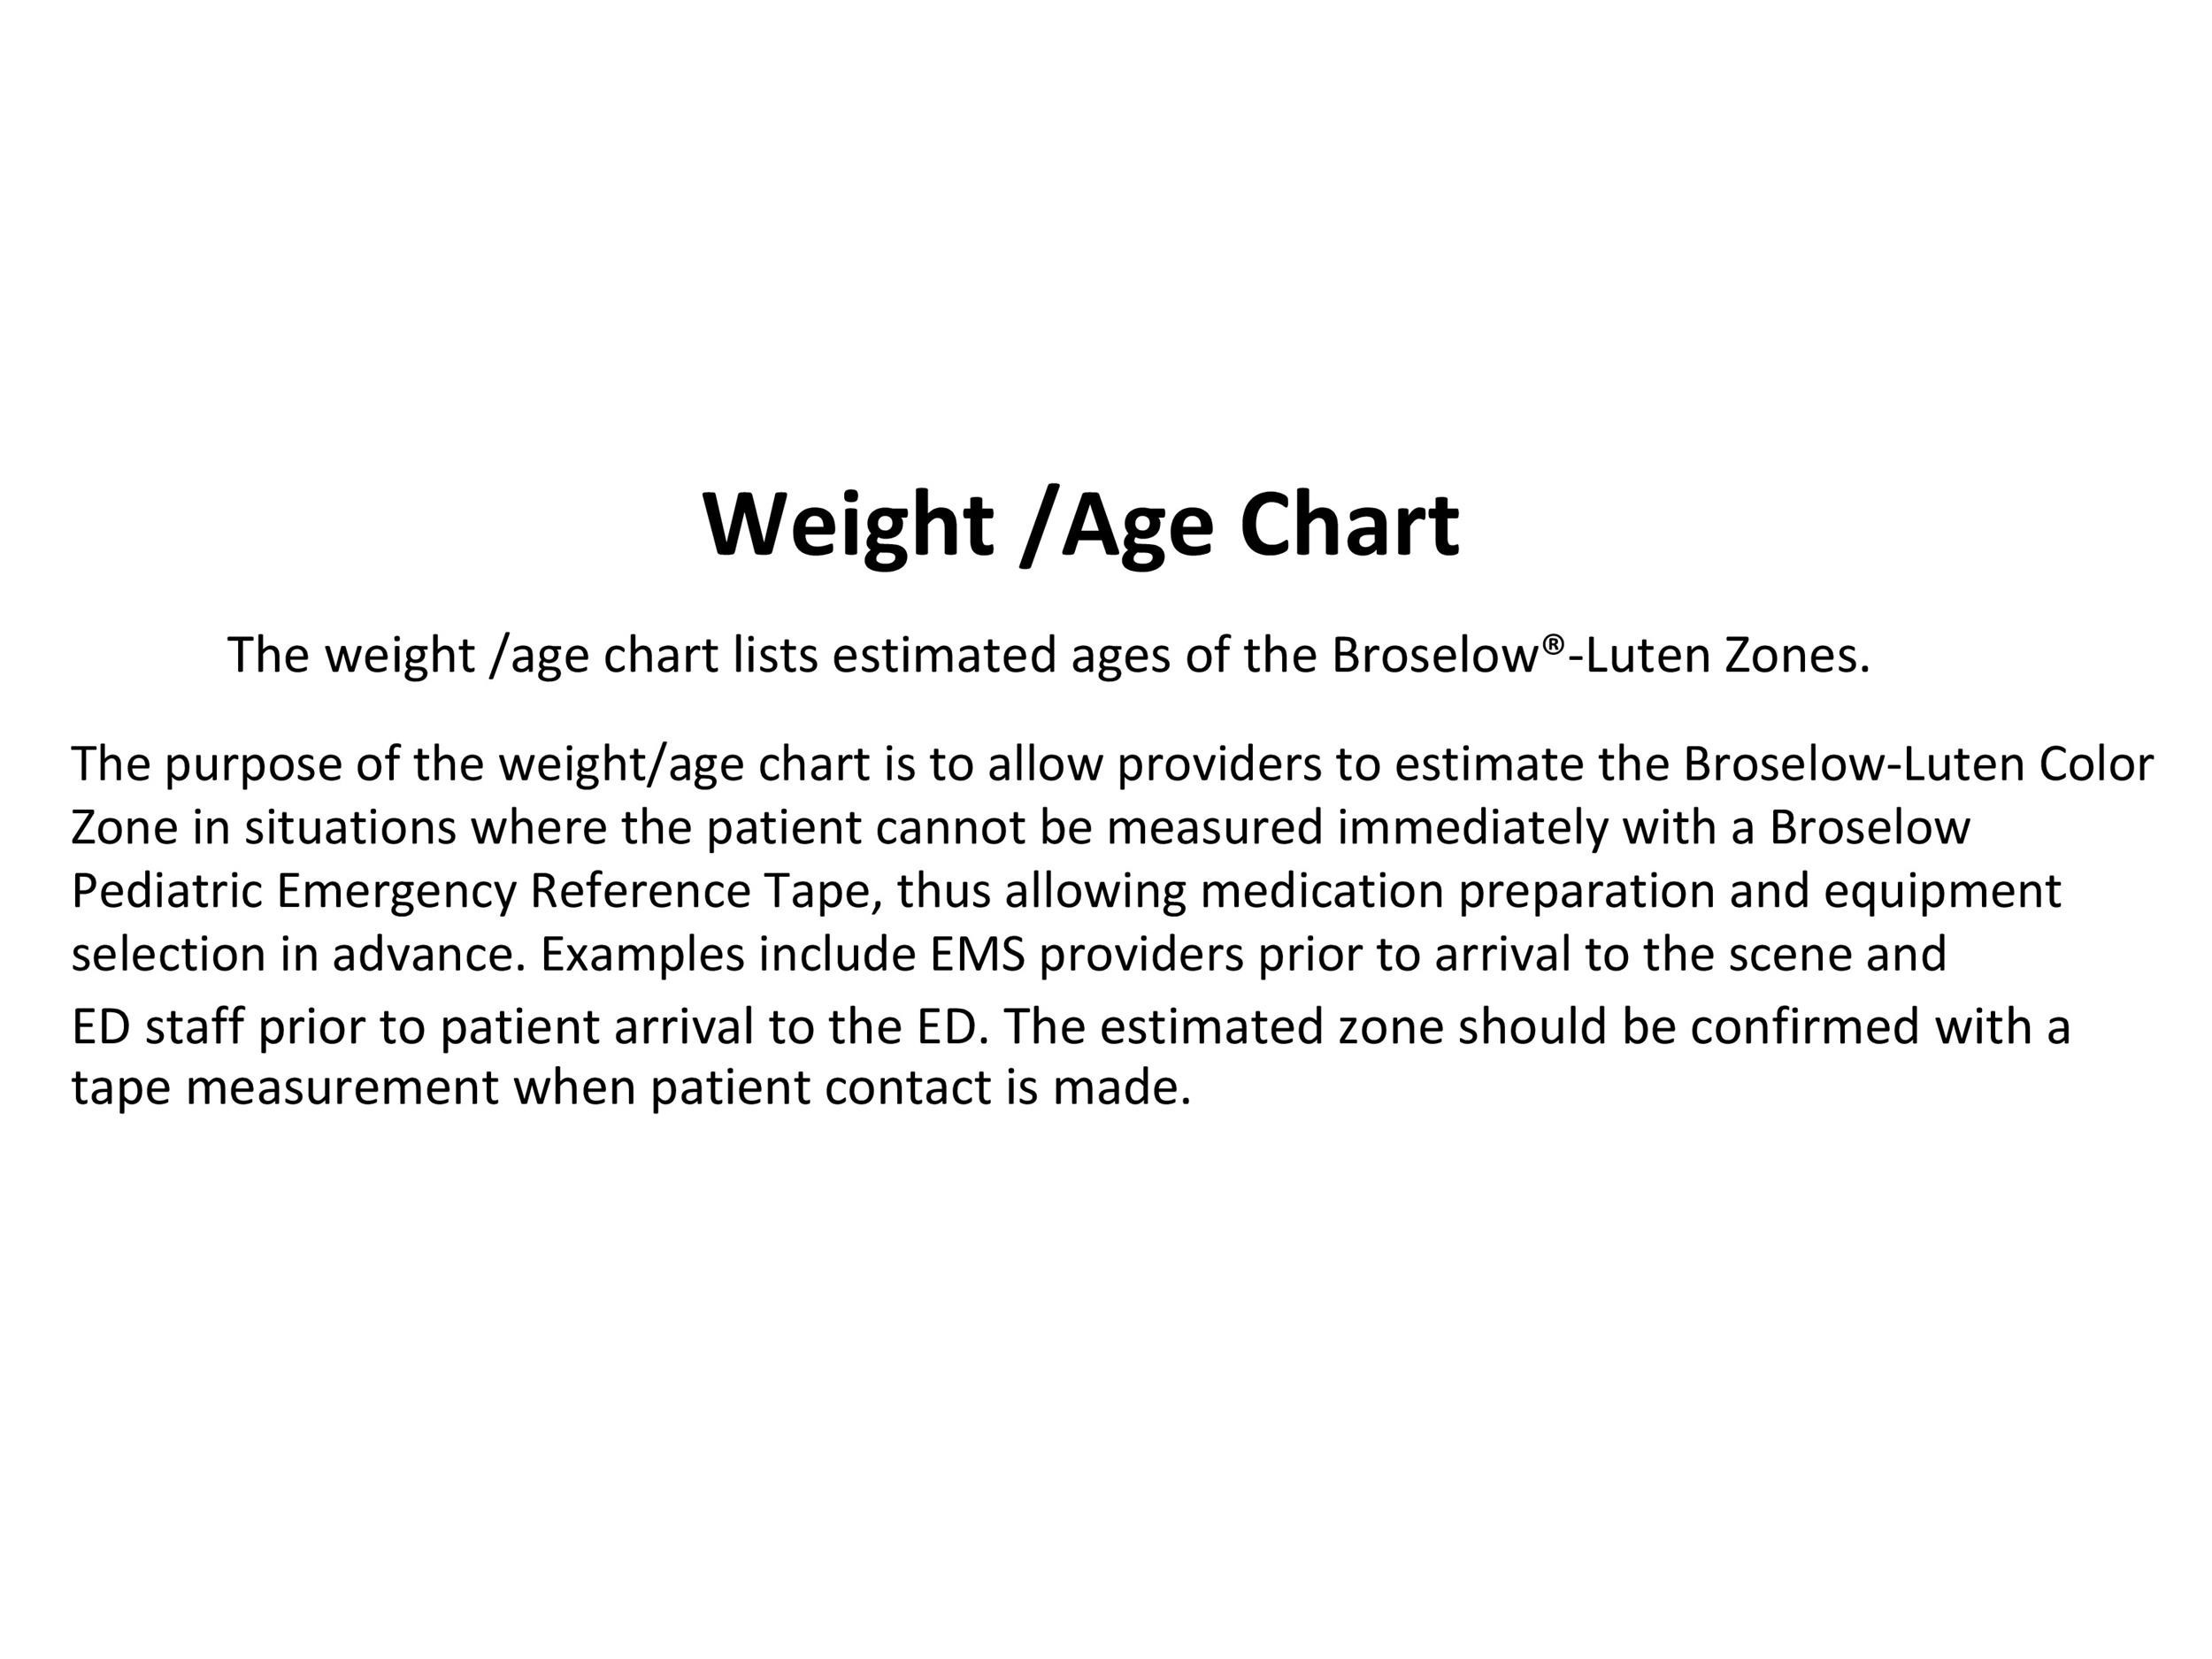 Free ideal weight chart 40